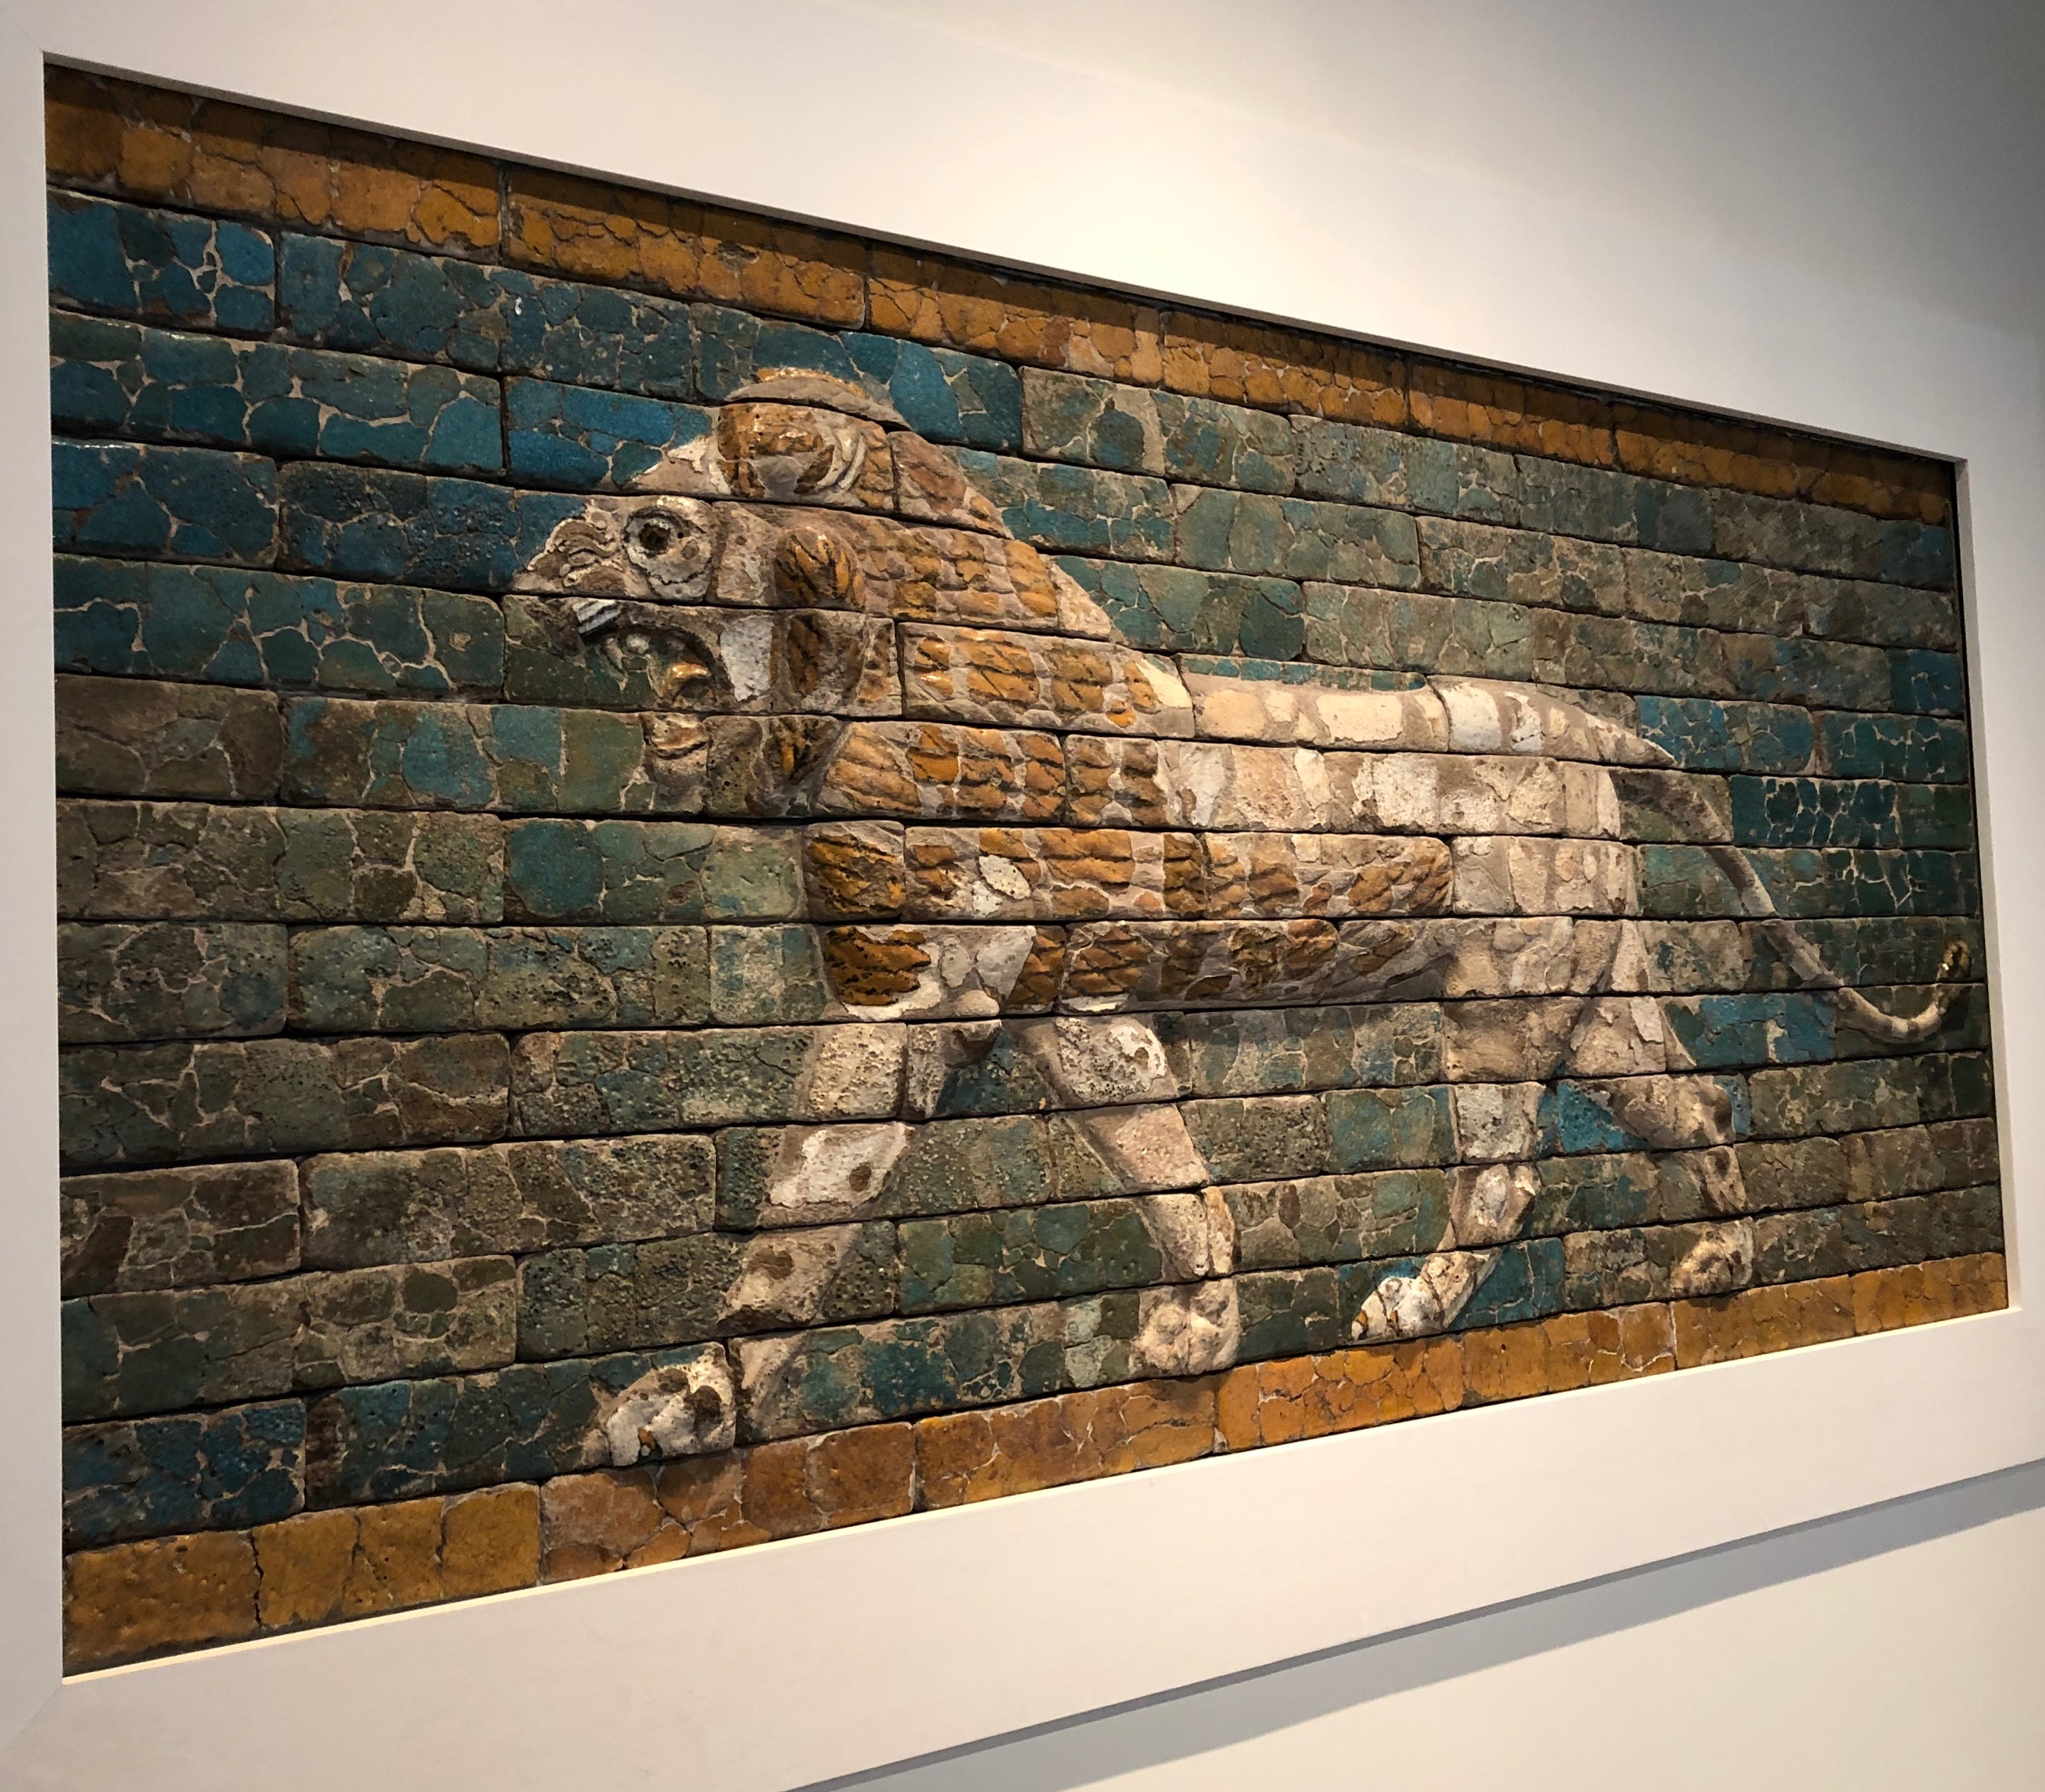 031919-Babylonian-lion-at-RISD